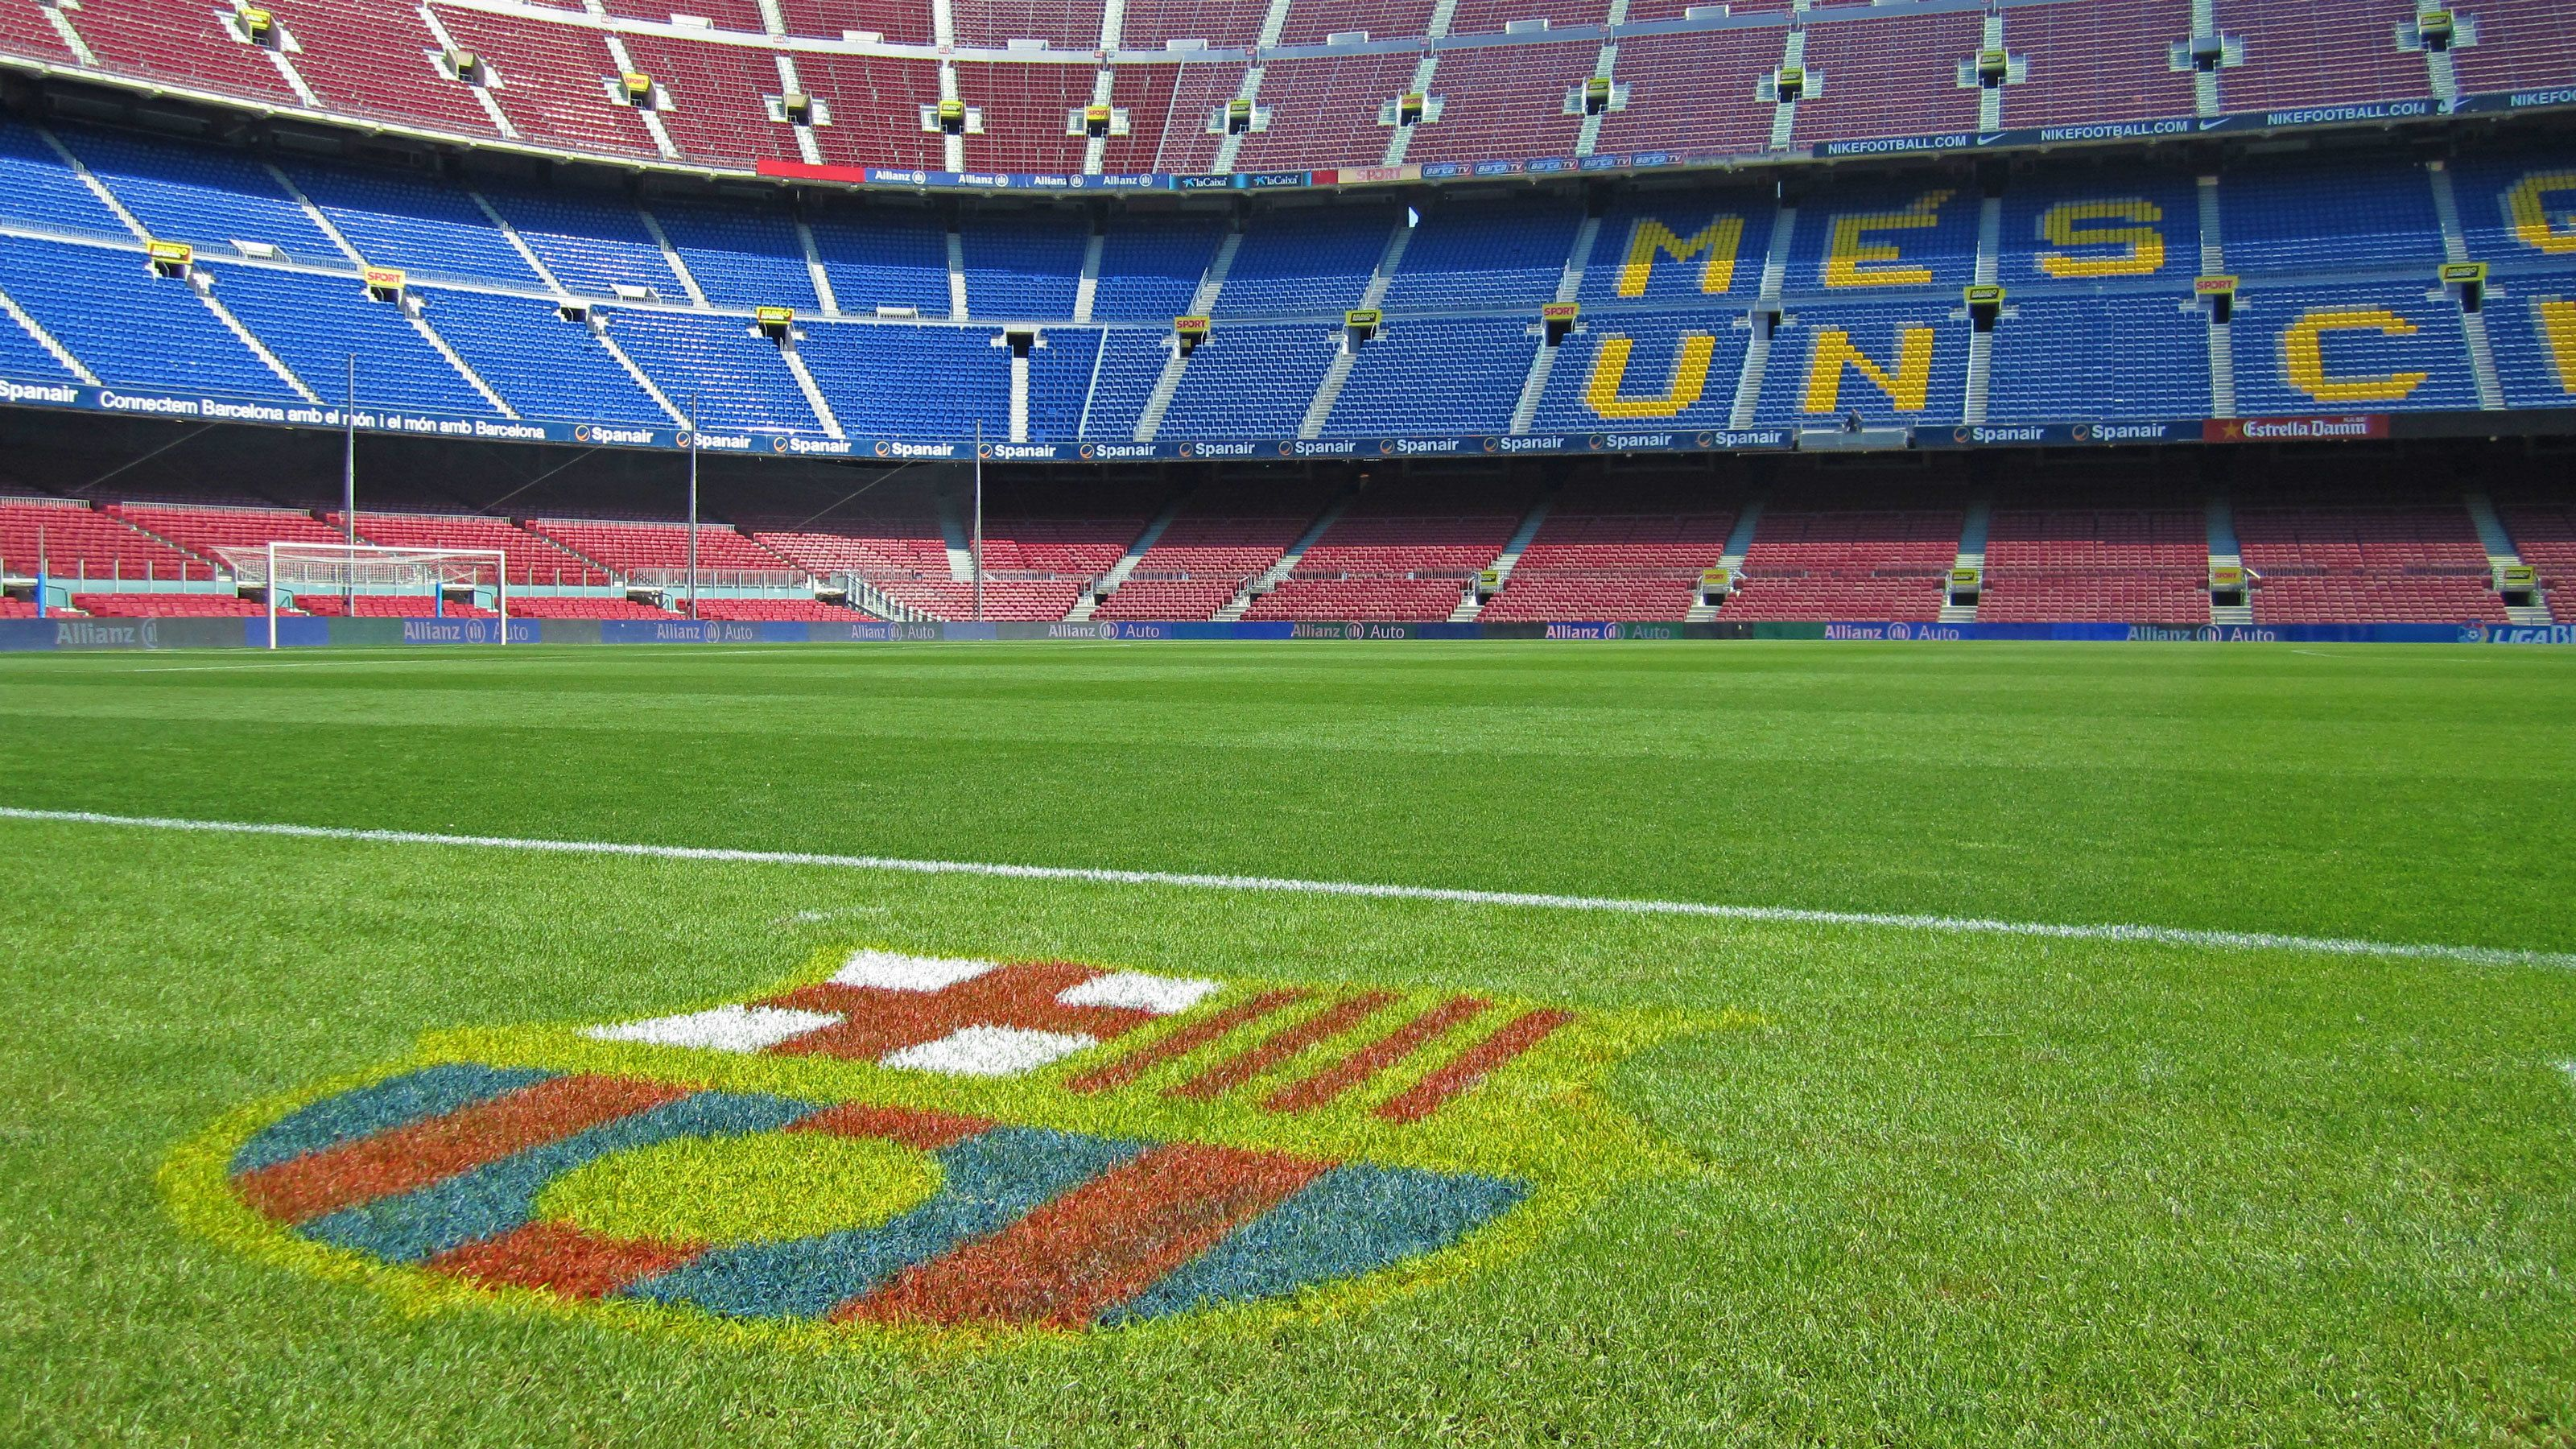 Field view of Camp Nou Stadium in Barcelona